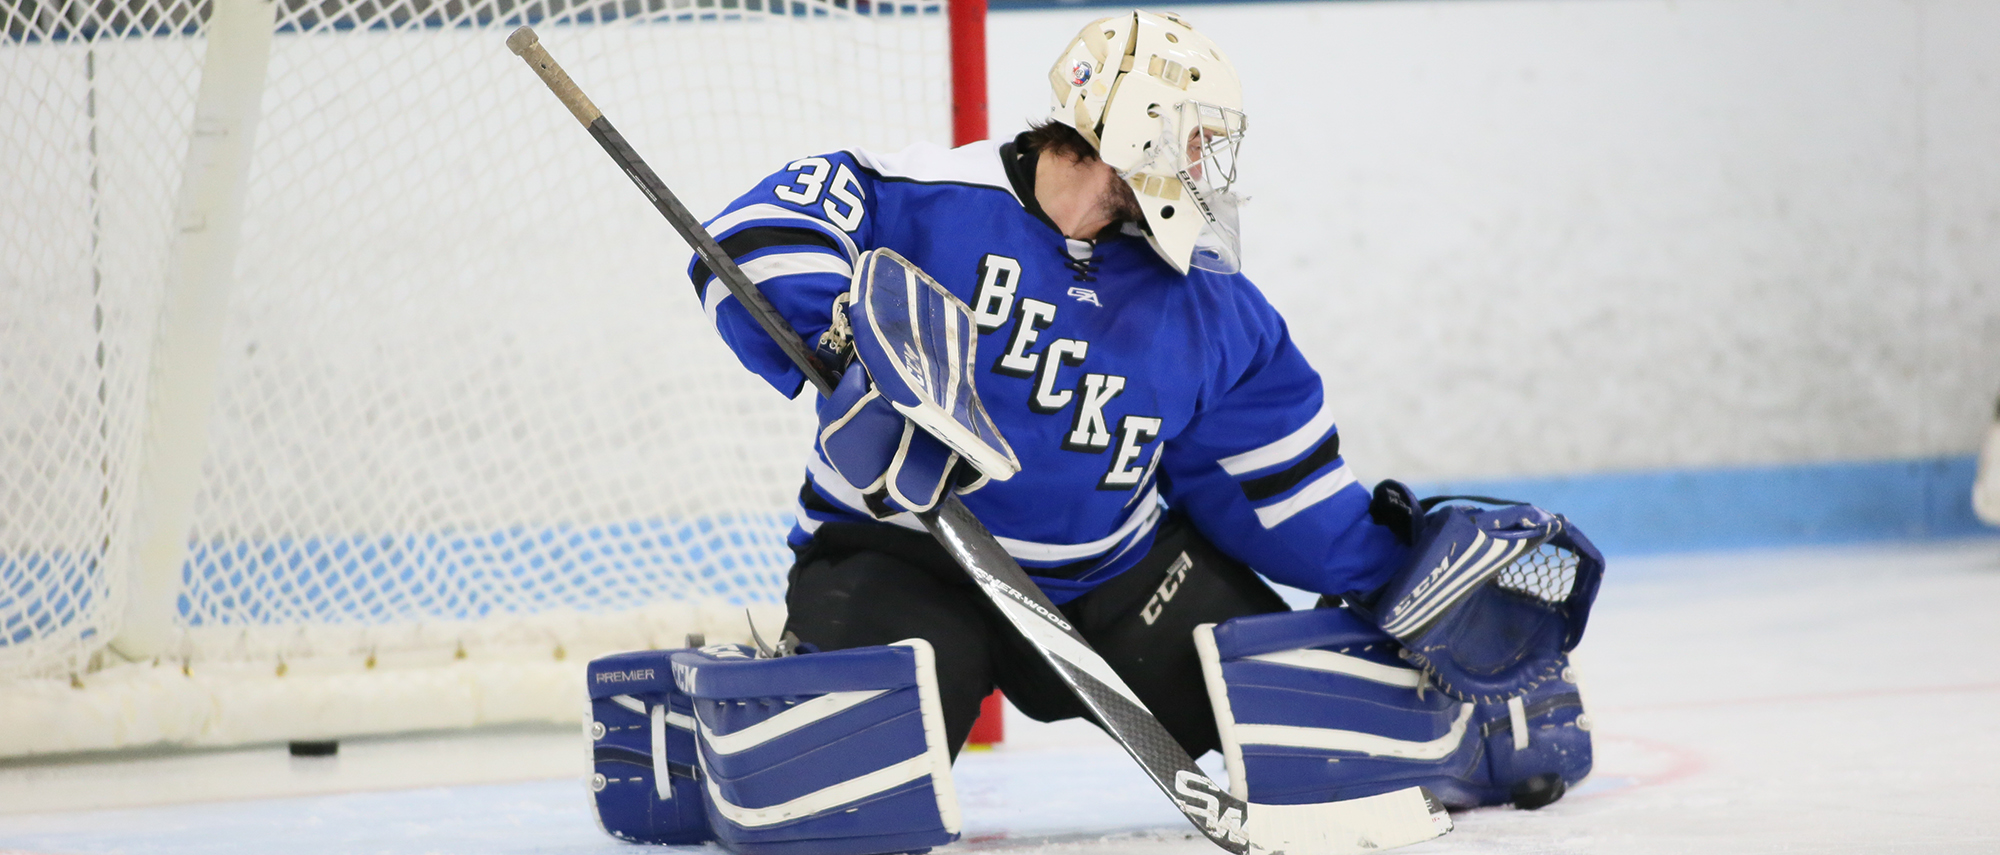 Grant Martens, men's ice hockey goaltender